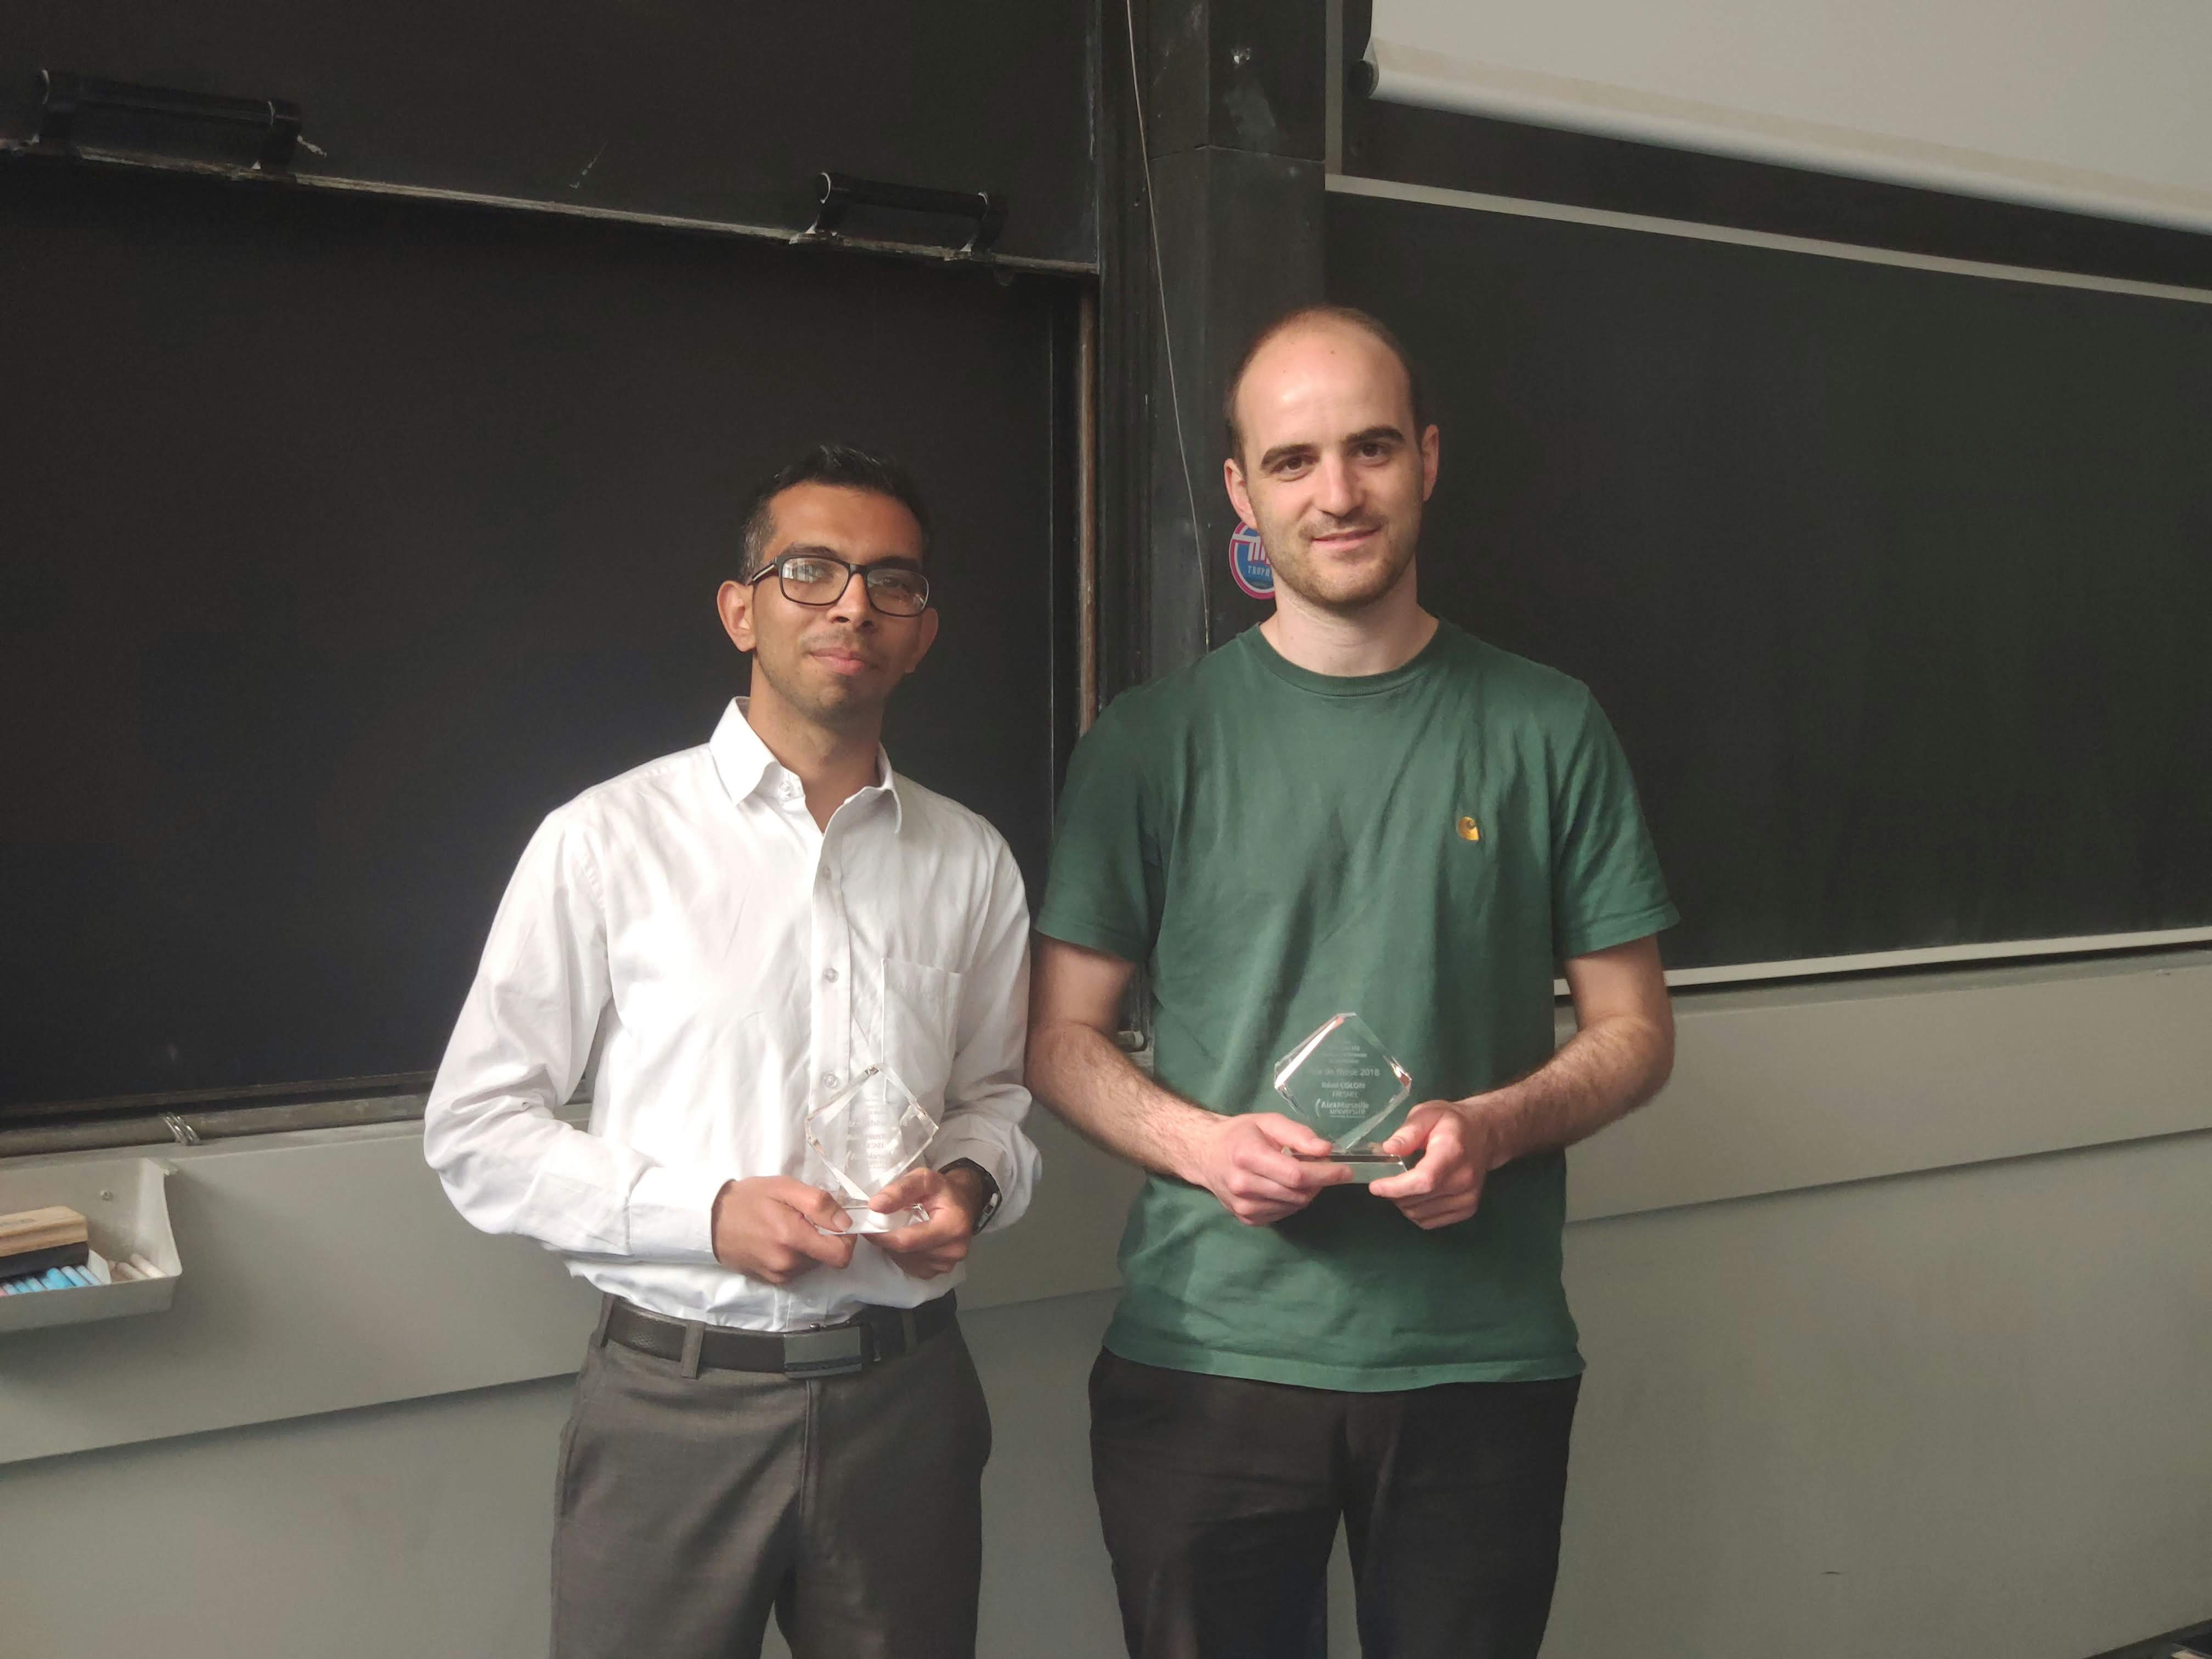 Our winner with his colleague from Institut Fresnel